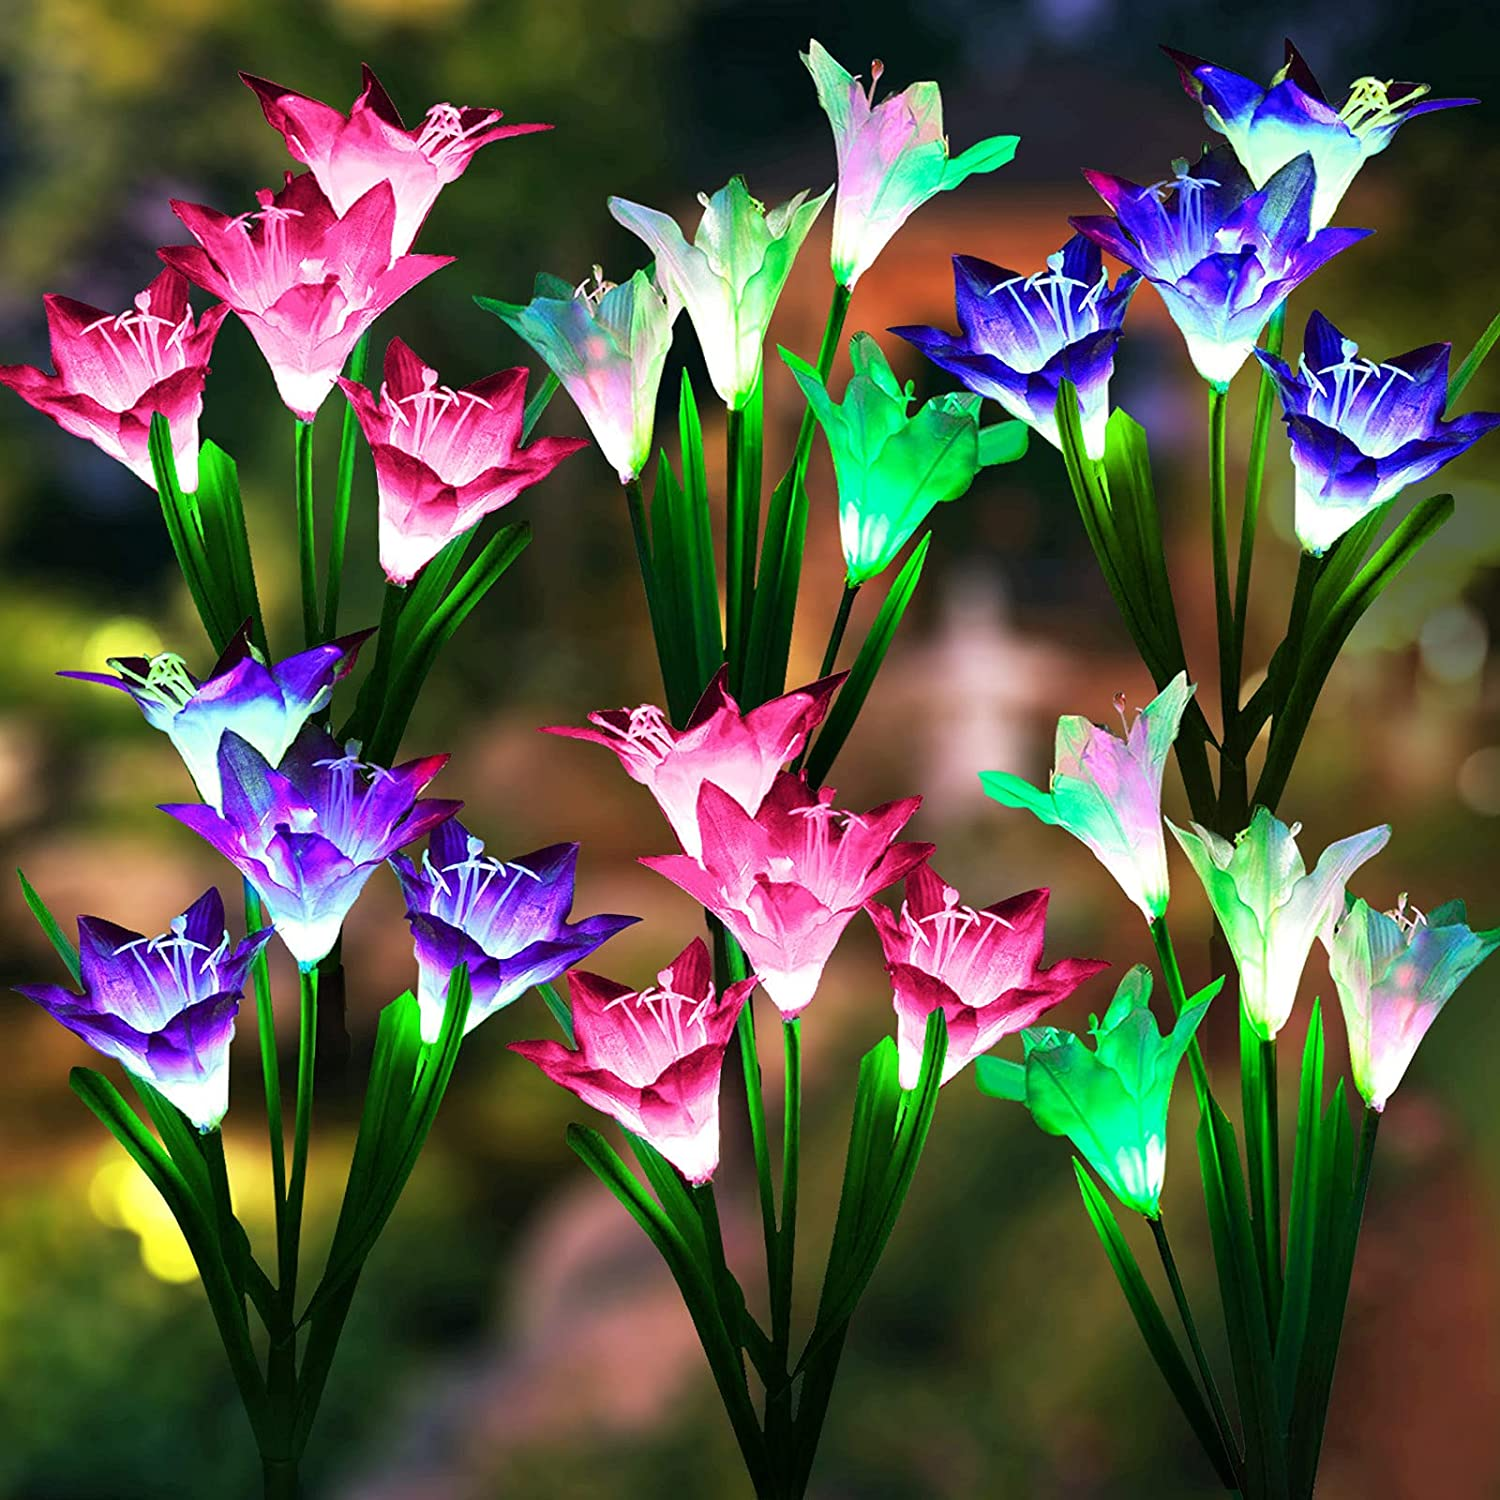 Solar Lights Outdoor Decorative, LETMY 6 Pack Upgraded Solar Garden Lights with 24 Lily Flowers, Waterproof Color Changing Outdoor Lights Solar Powered Flower Lights for Patio Yard Garden Decorations